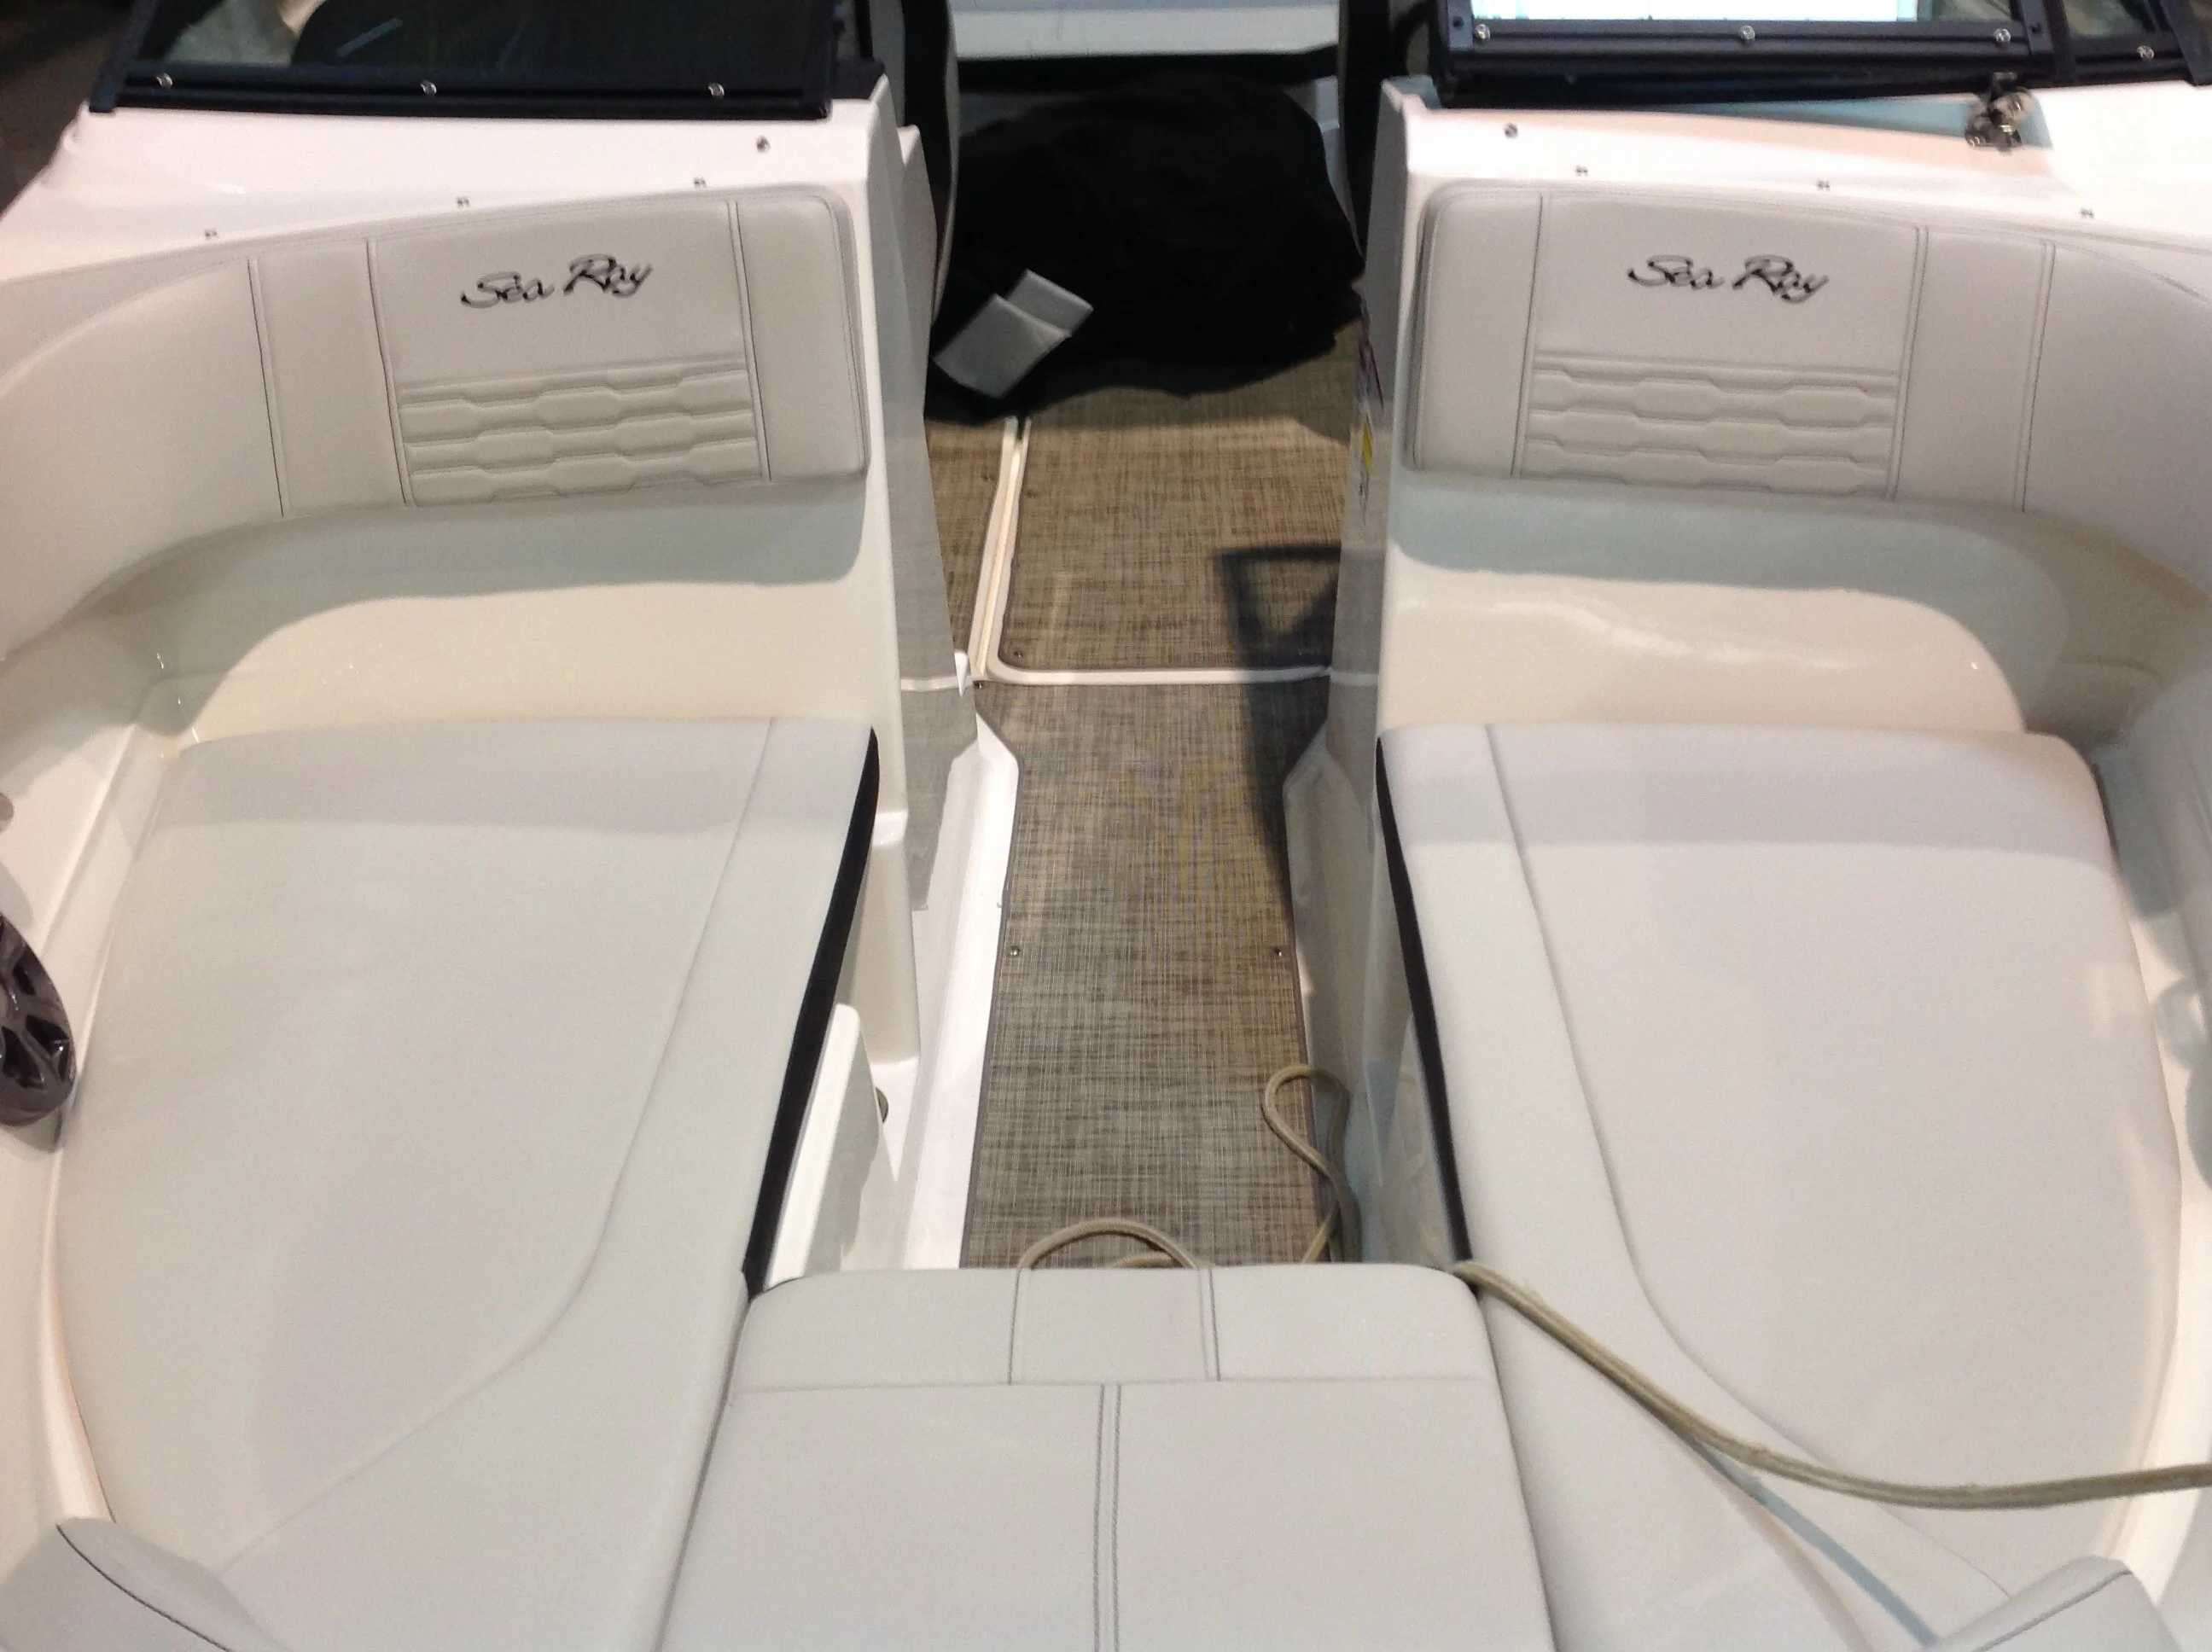 2021 Sea Ray boat for sale, model of the boat is 210 SPX & Image # 4 of 11